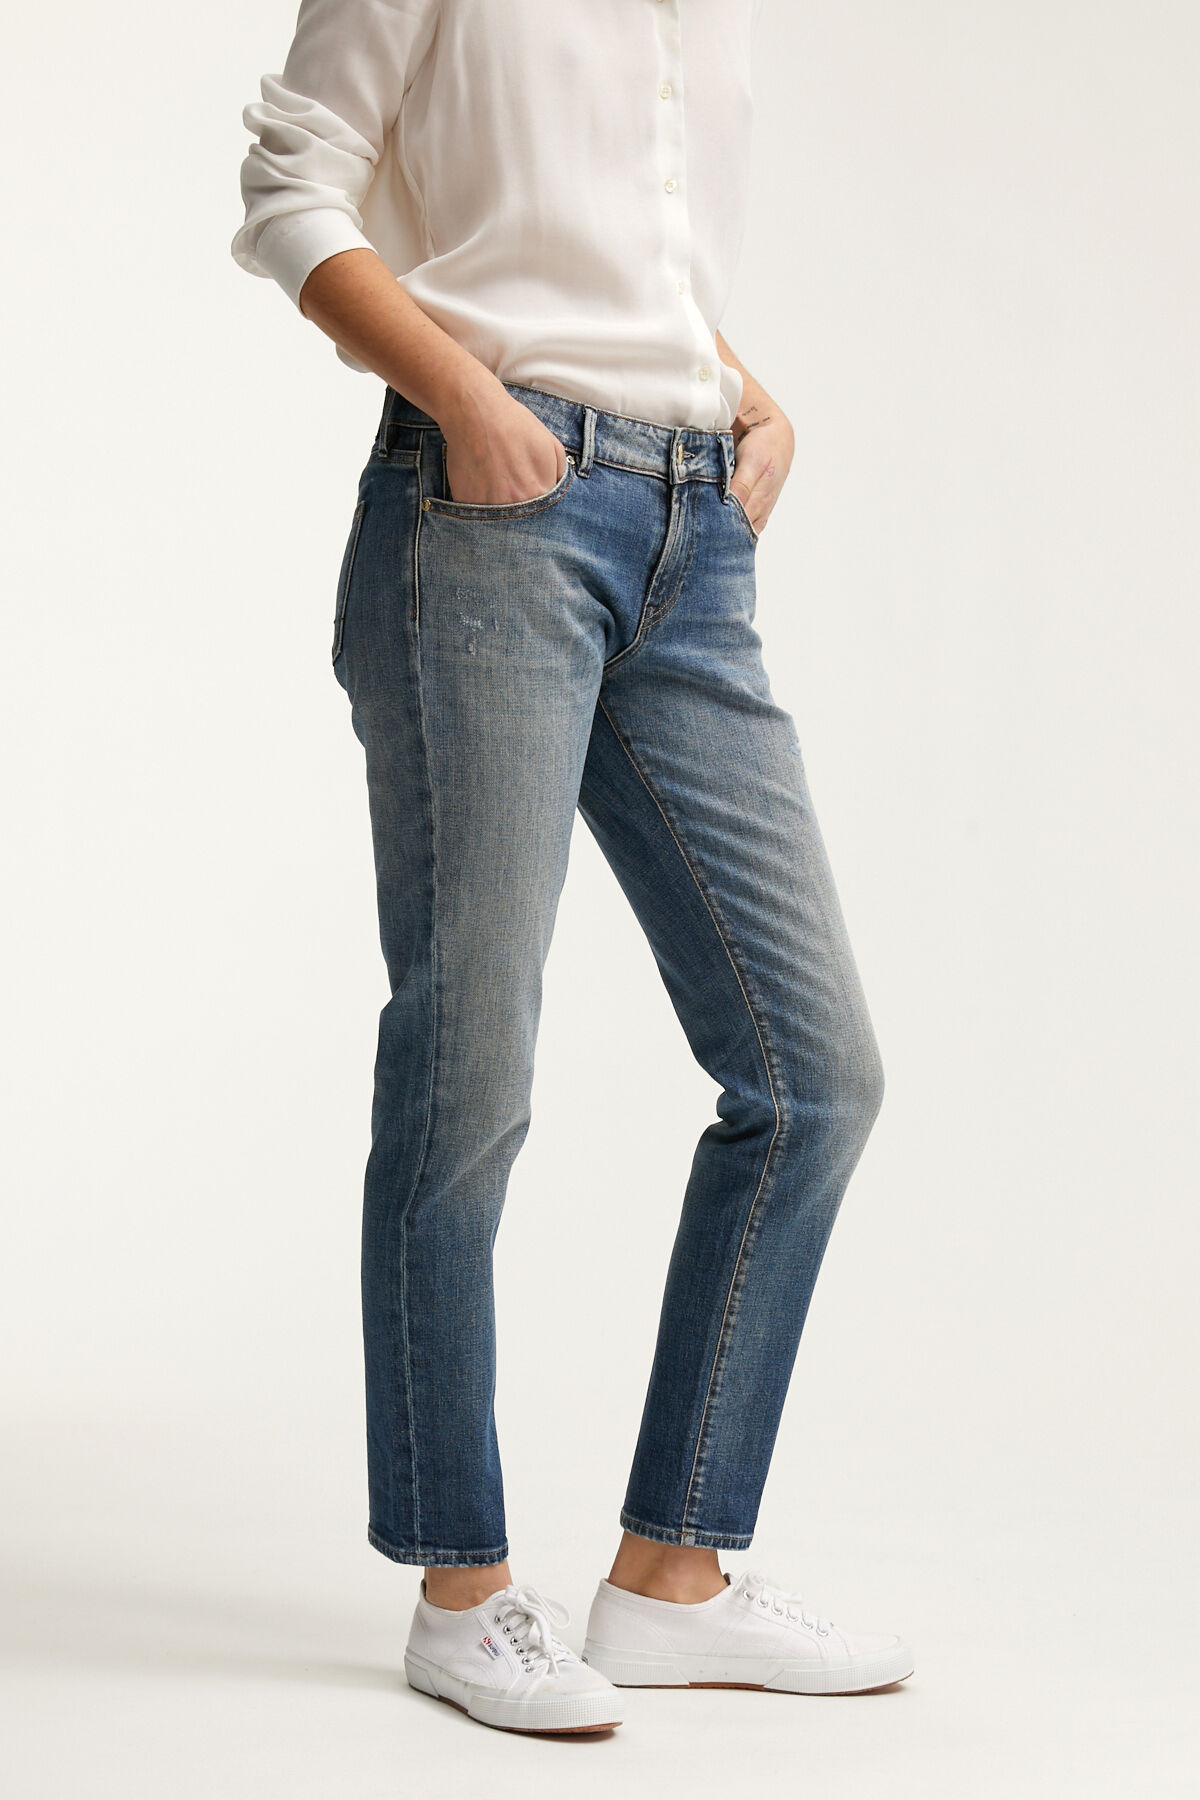 MONROE Four-Year Indigo Denim - Girlfriend Fit